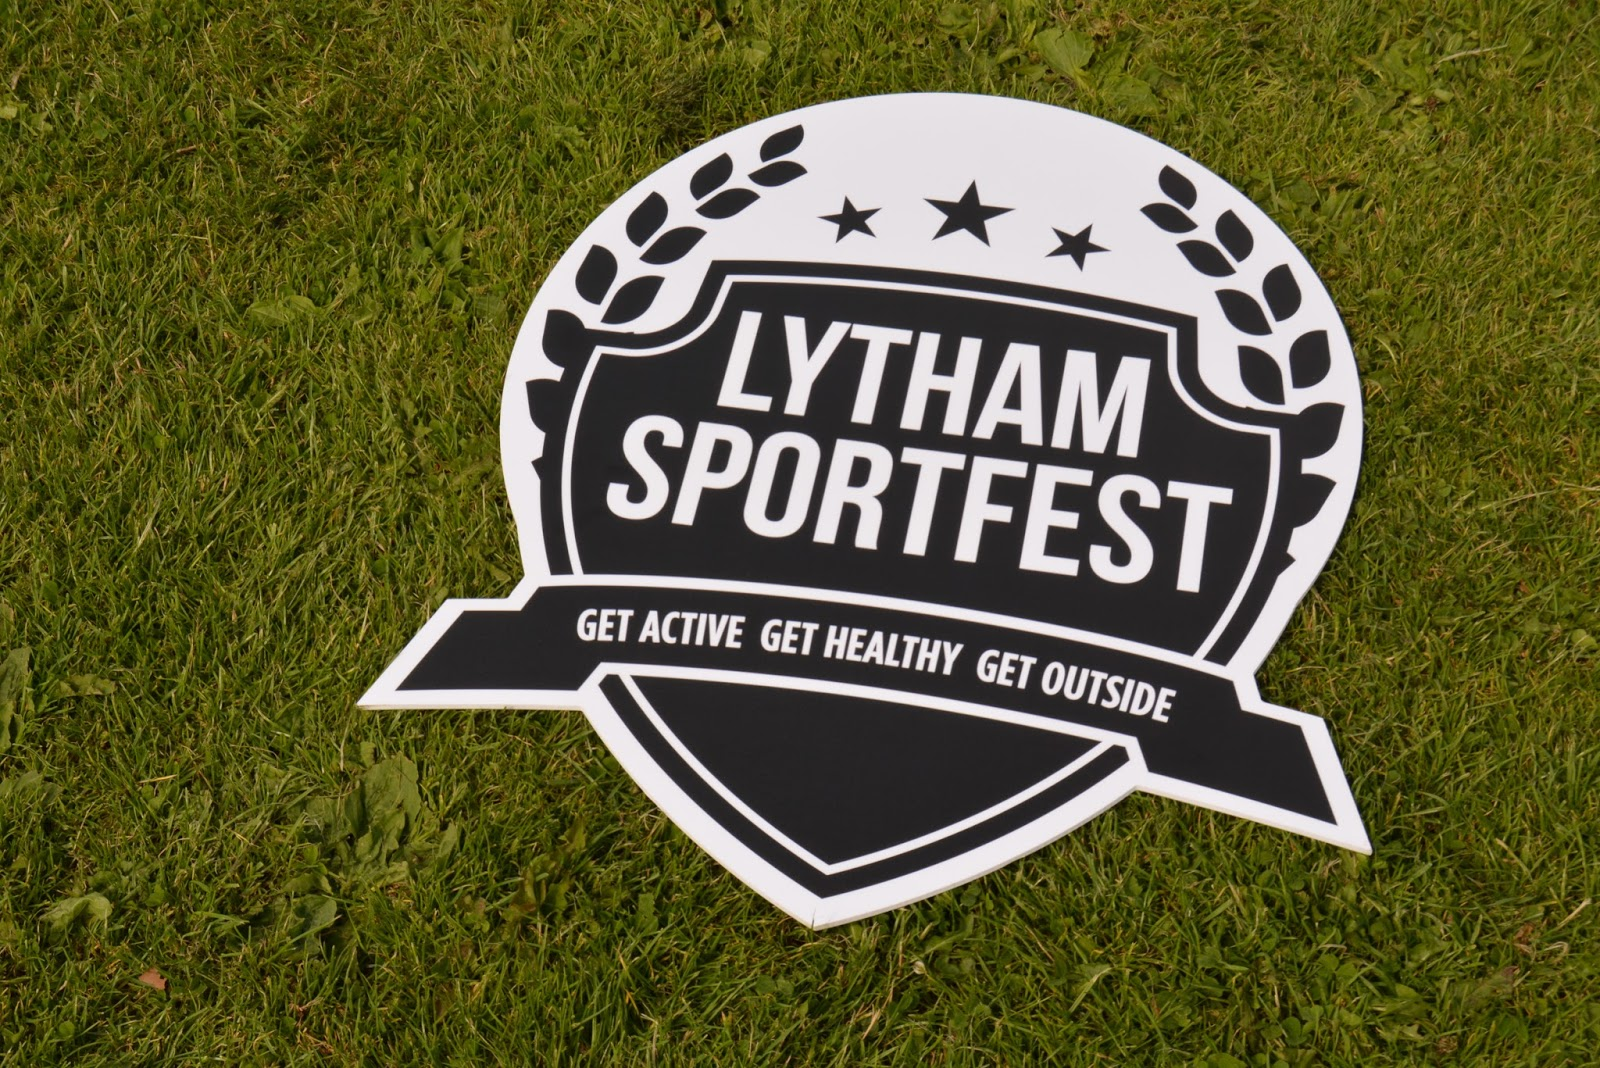 lytham, lifestyle, sports, fitness, events, local, nationwide, itv, tv, national, granada reports